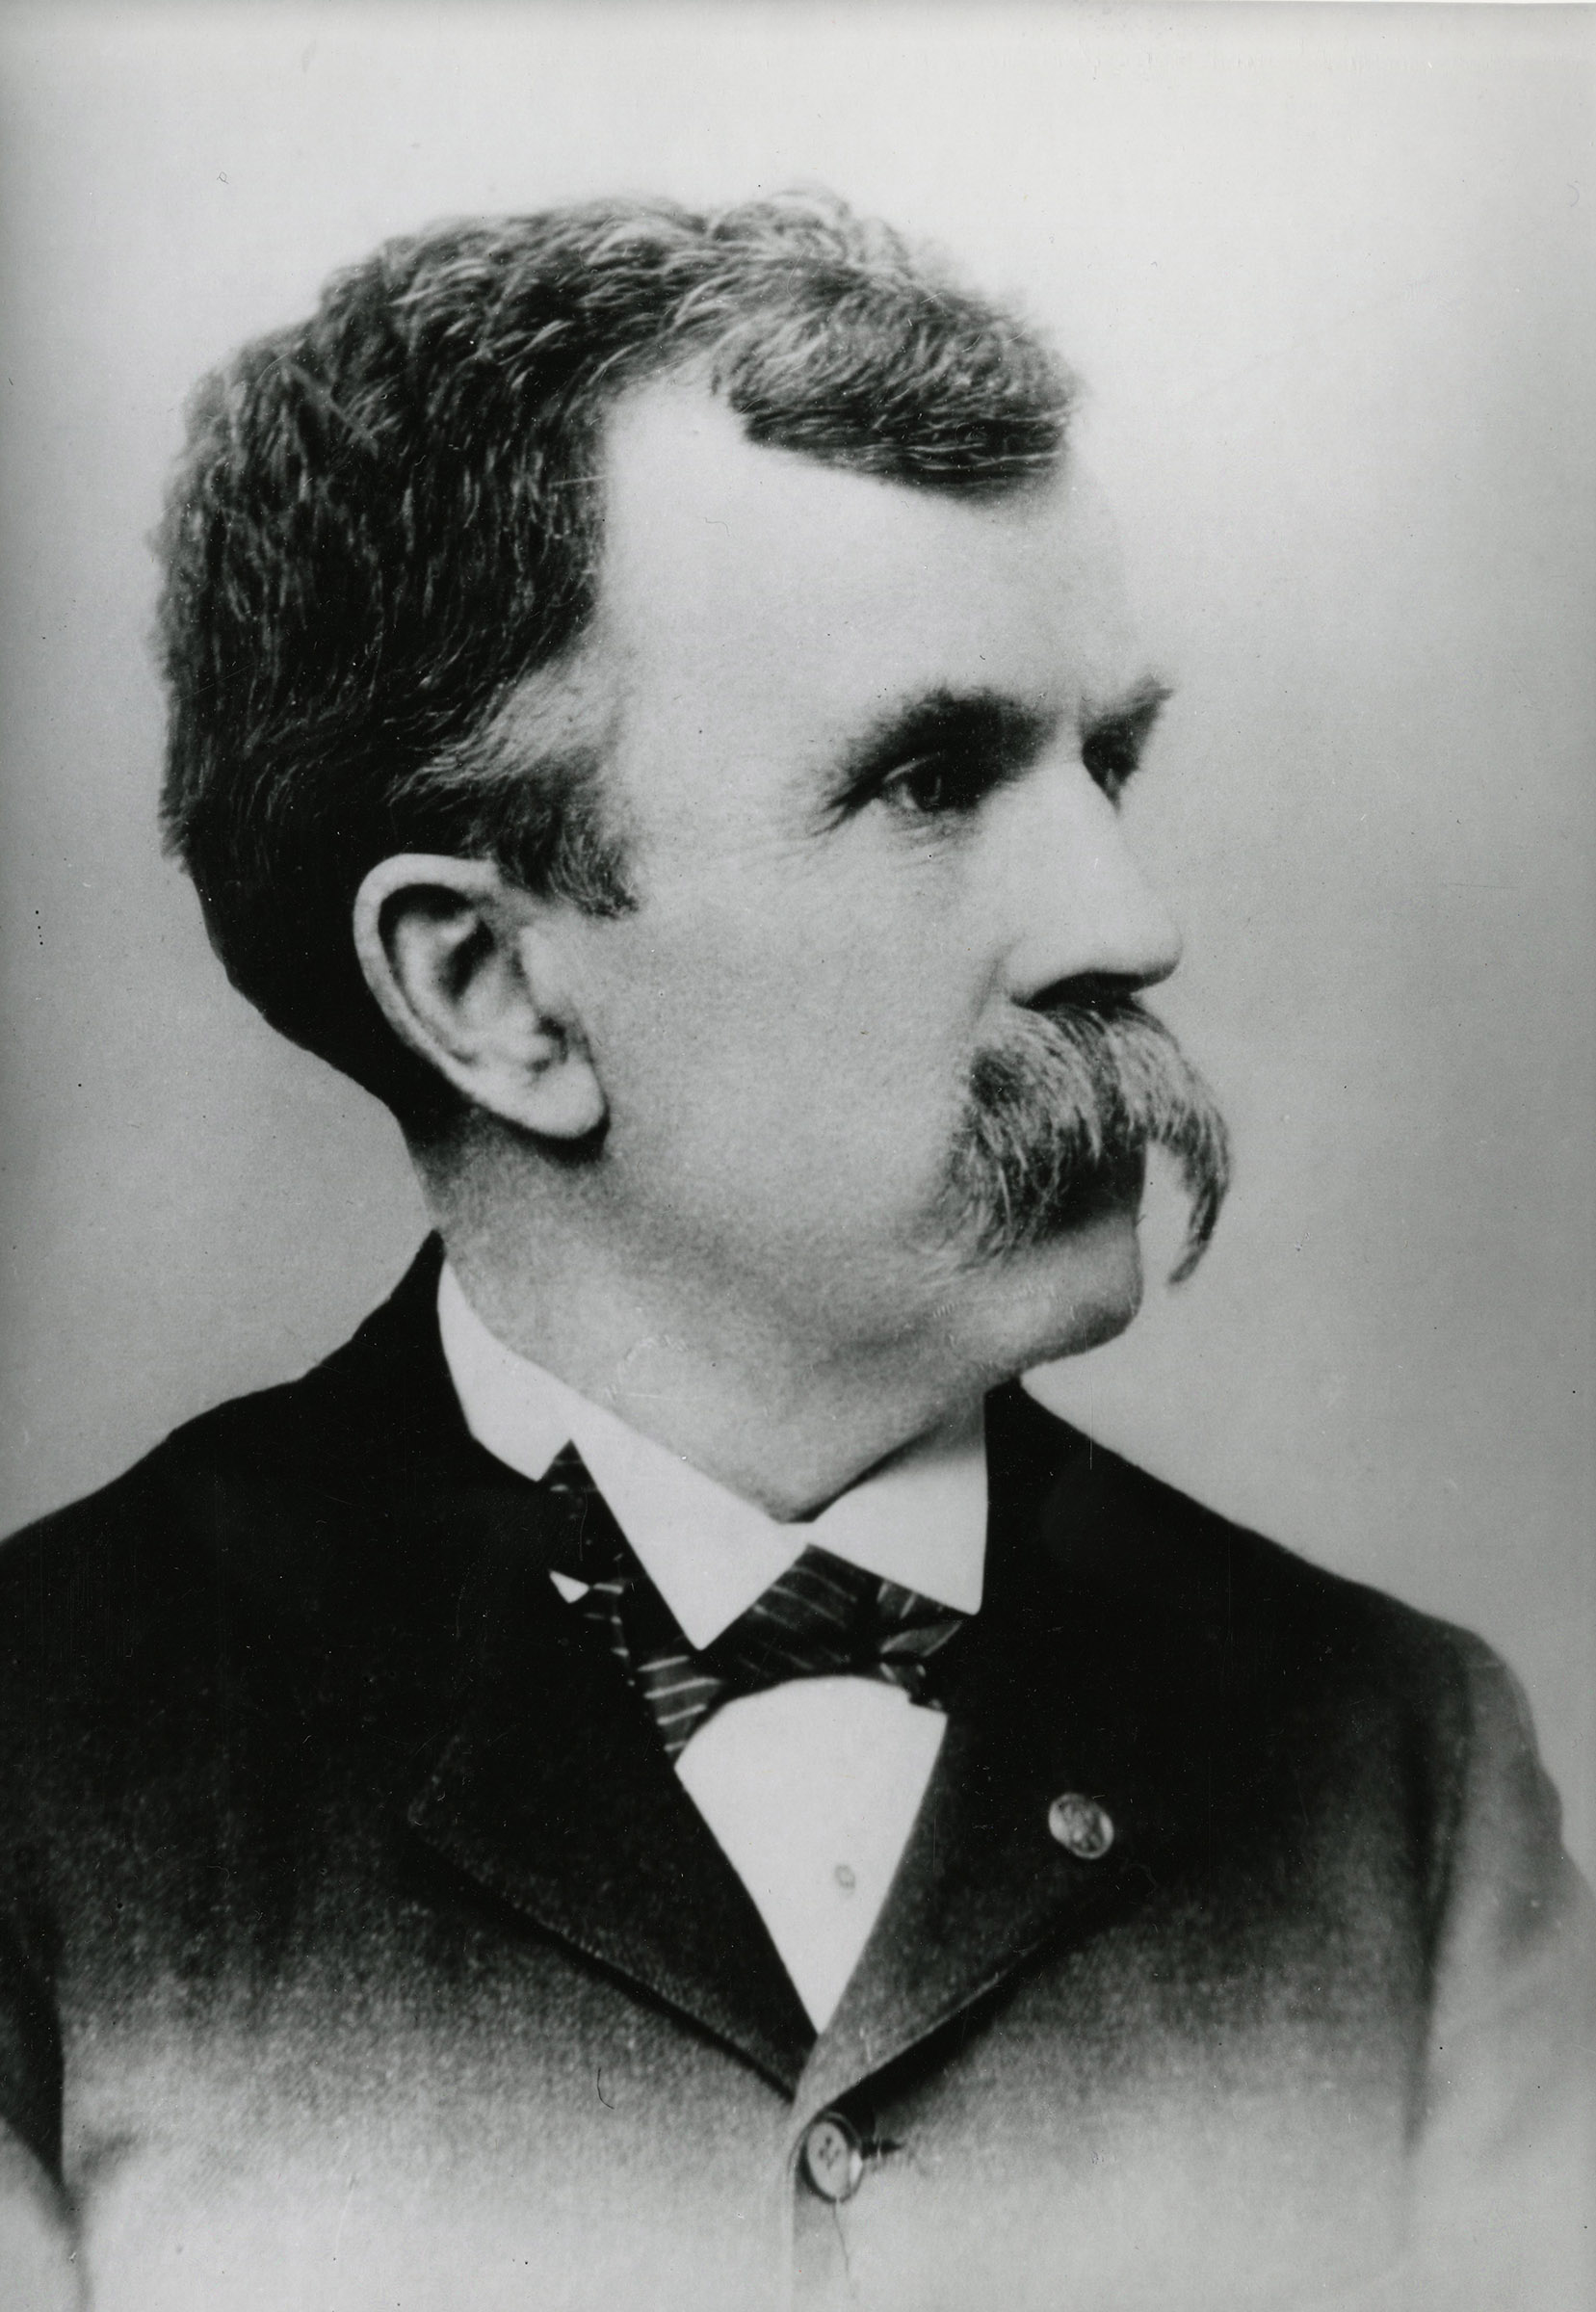 Benjamin Koons (1844-1903), first President of the Storrs Agricultural College